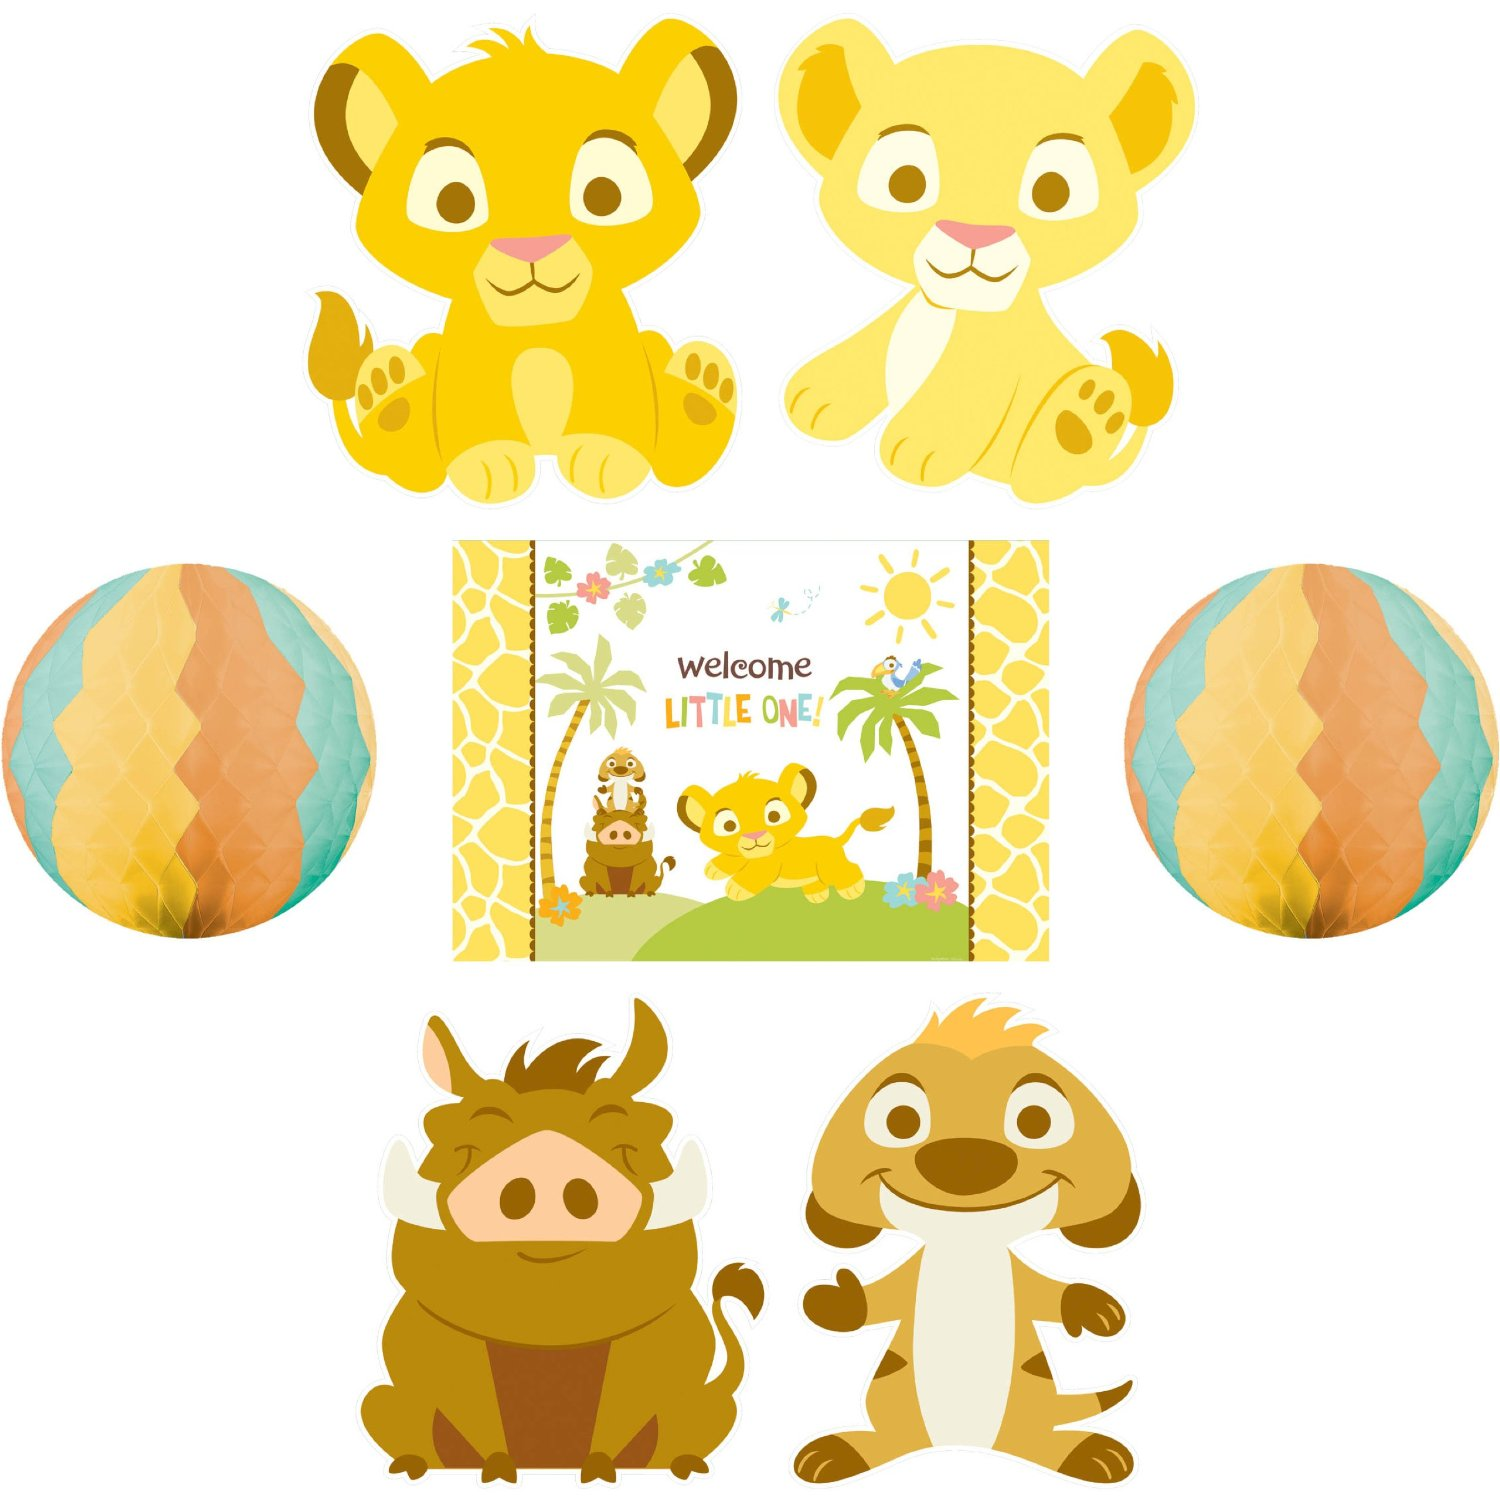 Lion king baby shower clipart image library library baby shower ideas it\'s a boy Baby Gift And Shower Decoration ... image library library